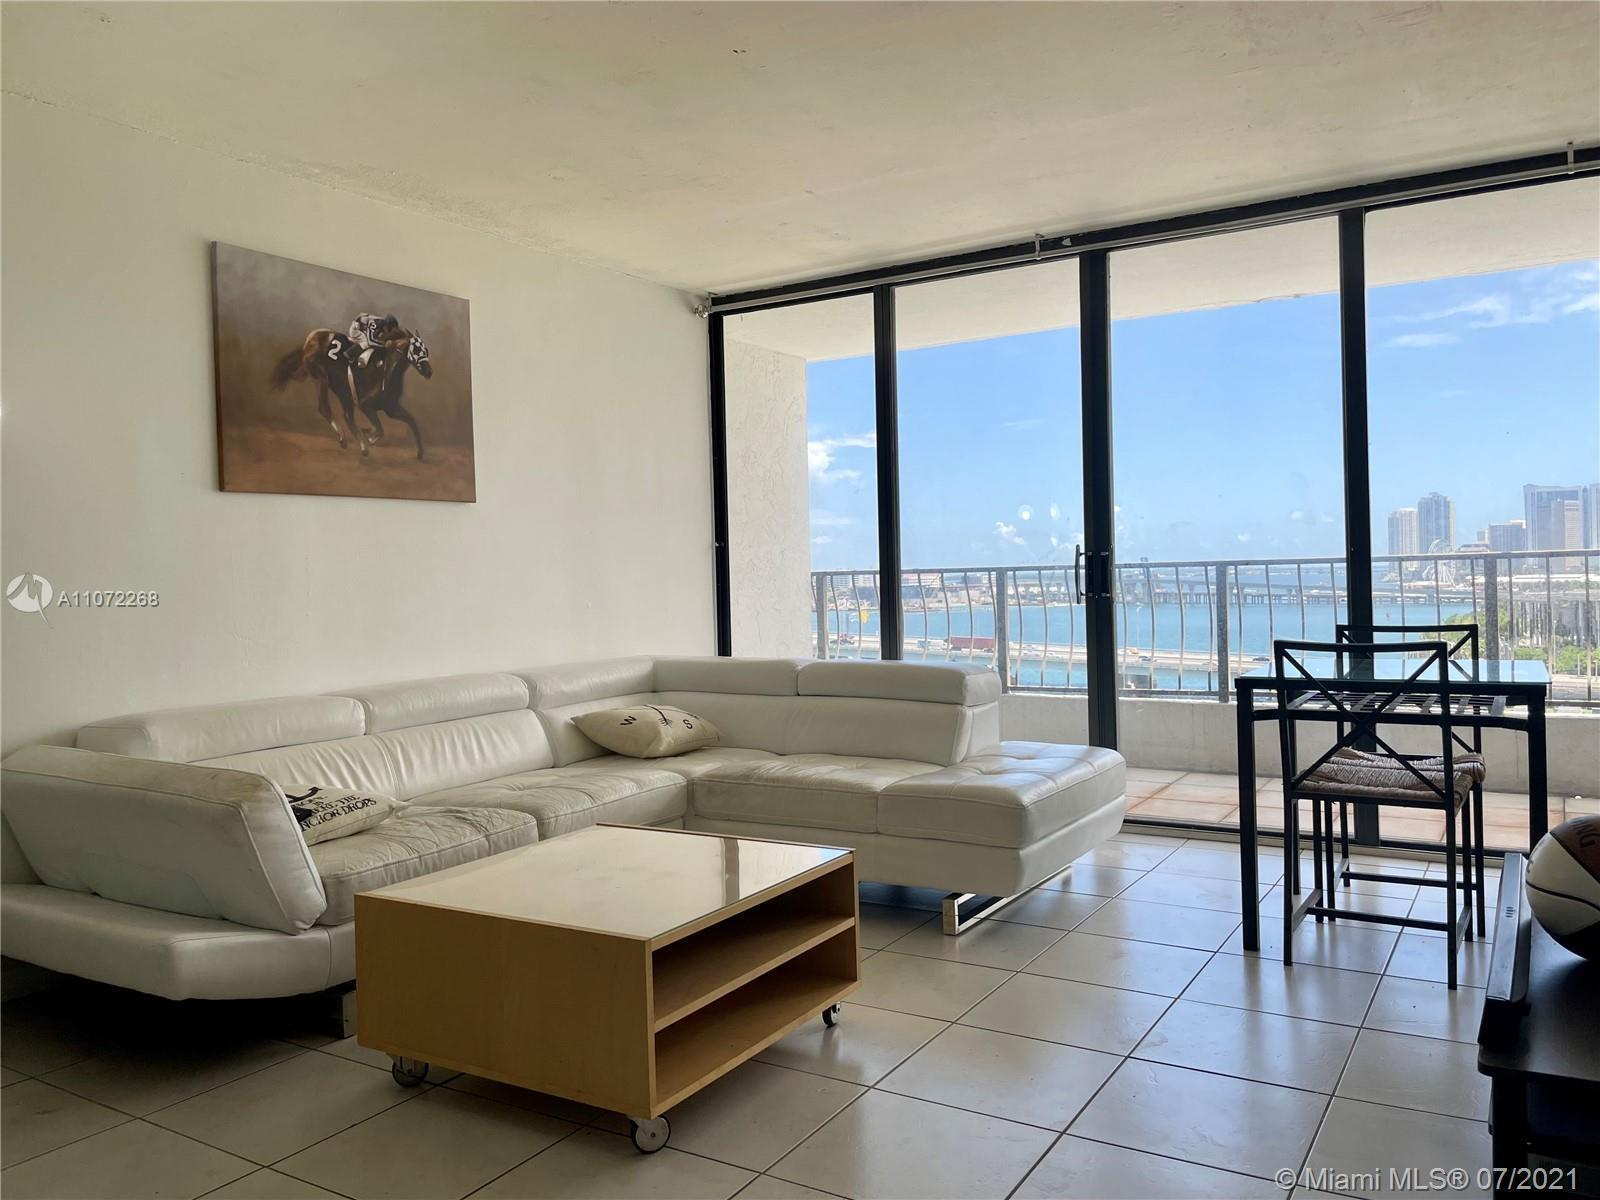 LIVE WHERE OTHERS WANT TO VACATION, THIS IMPRESSIVE 1 BED 1& 1.5 BATH CONDO LOCATED ON THE ENTRANCE